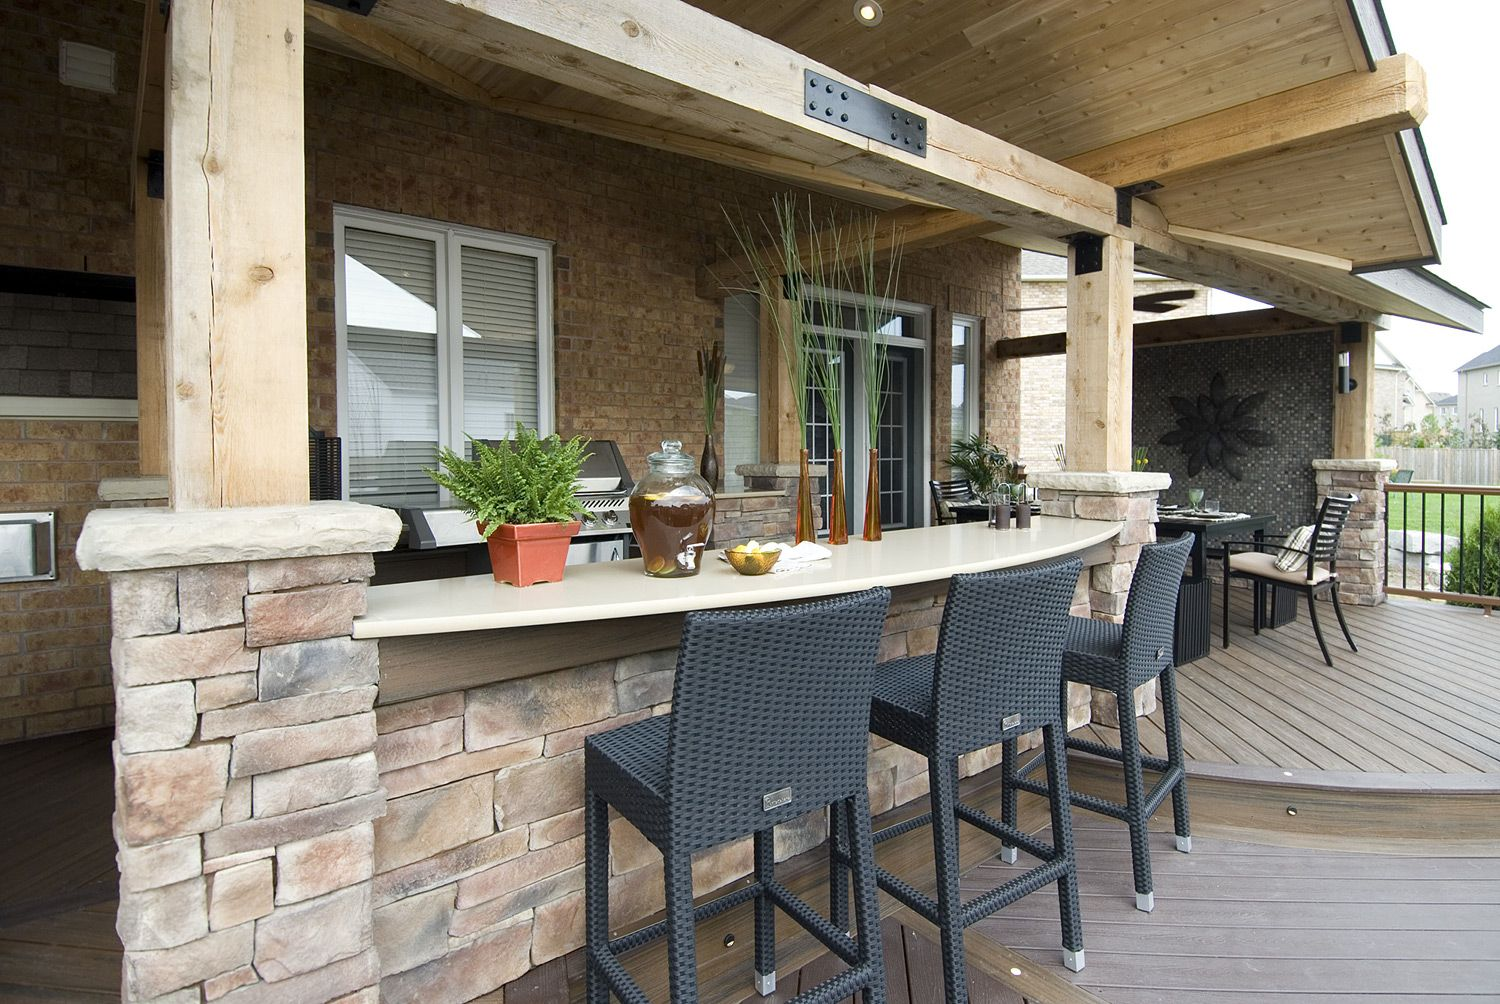 a dining bar opposite the barbeque is a perfect place for serving